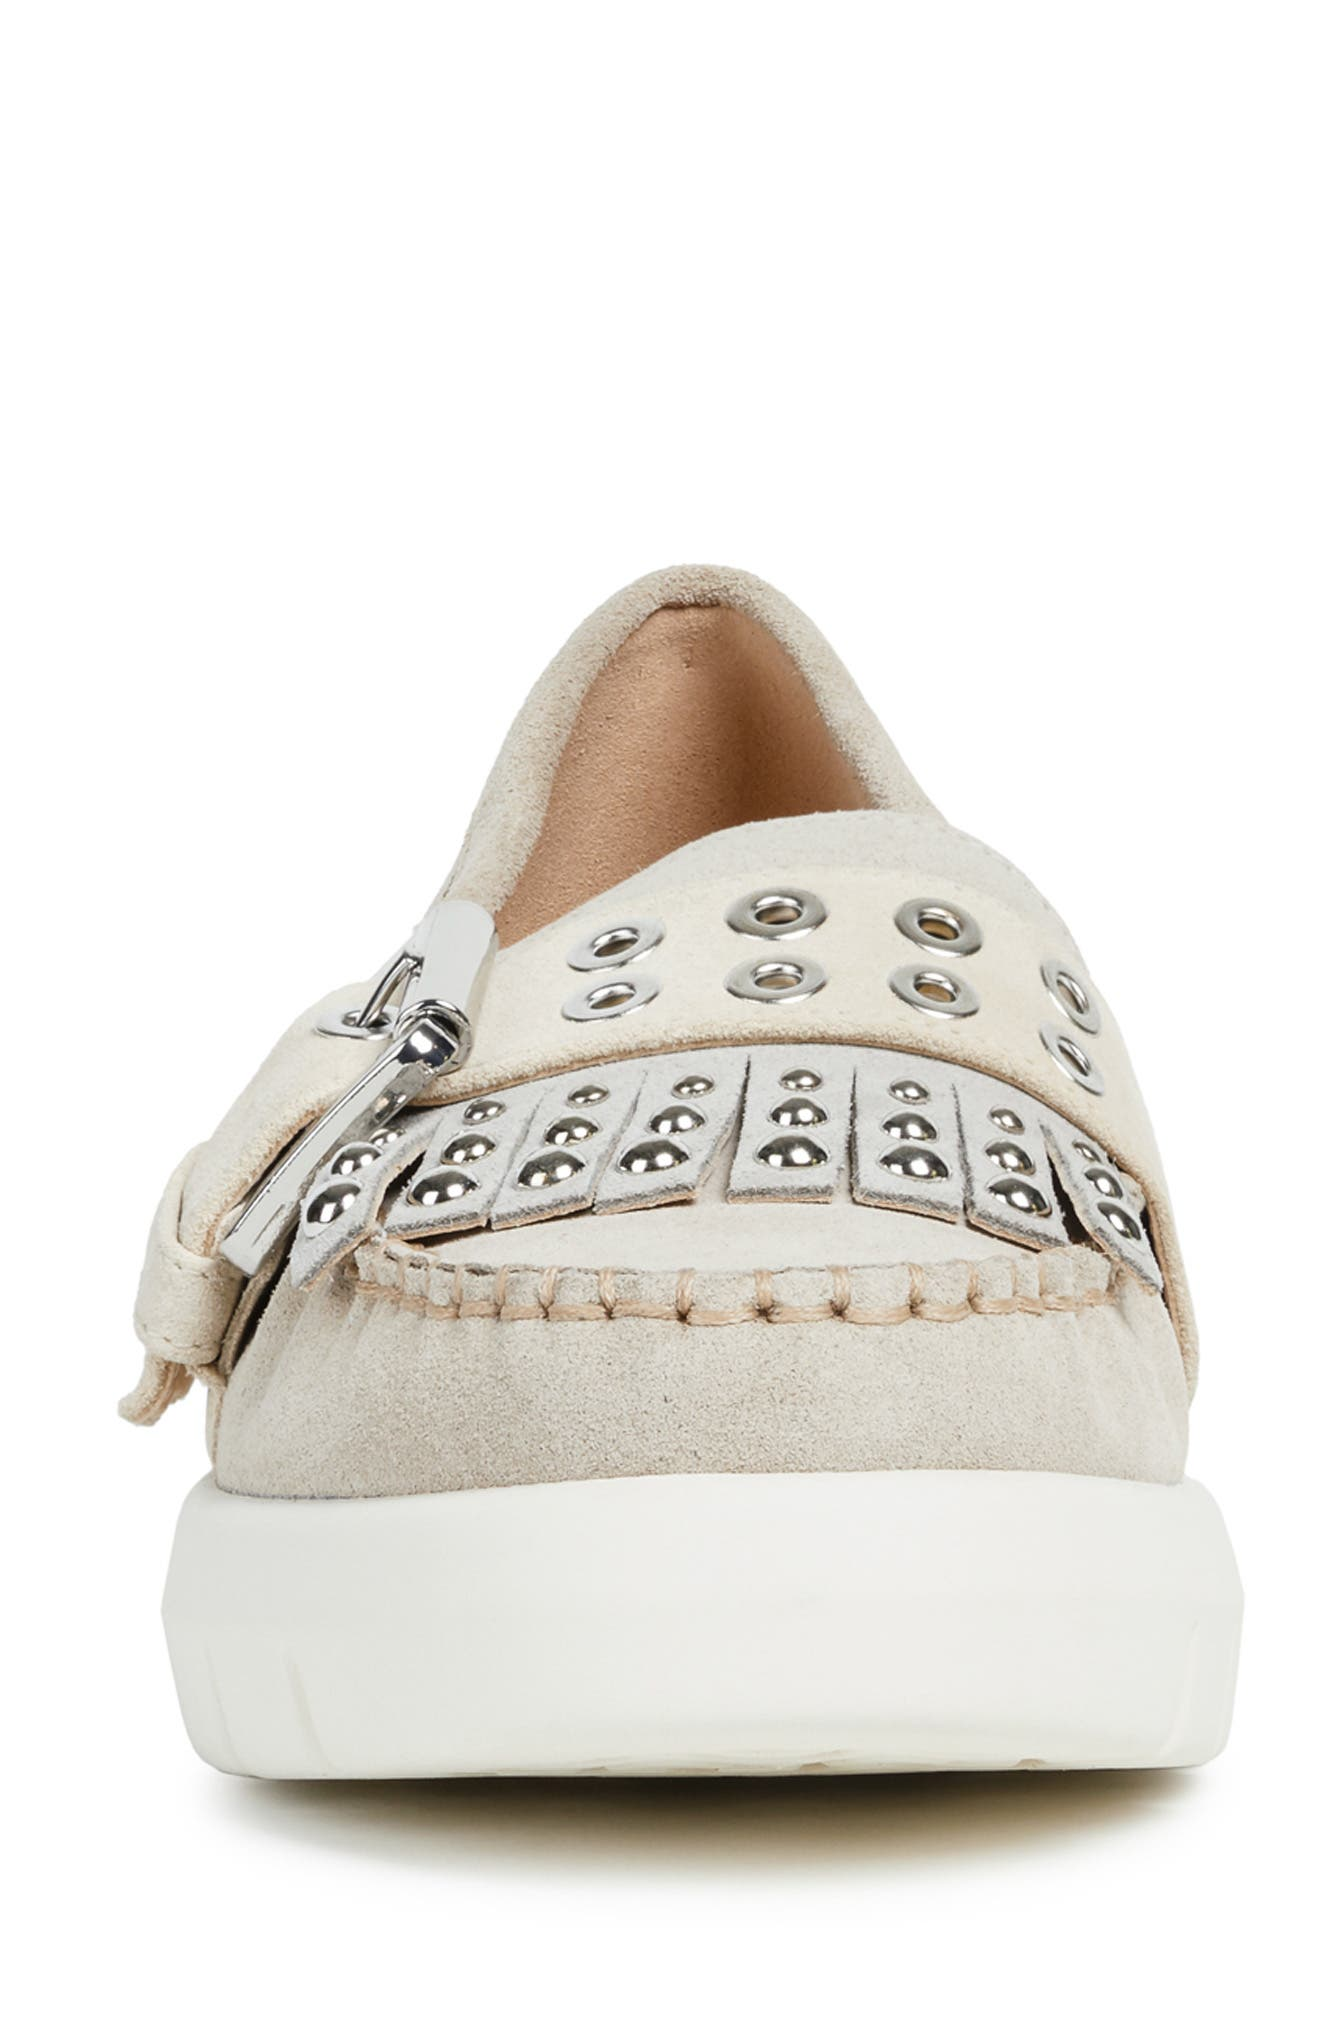 GEOX, Wimbley Studded Kiltie Loafer, Alternate thumbnail 4, color, LIGHT TAUPE/ GREY SUEDE